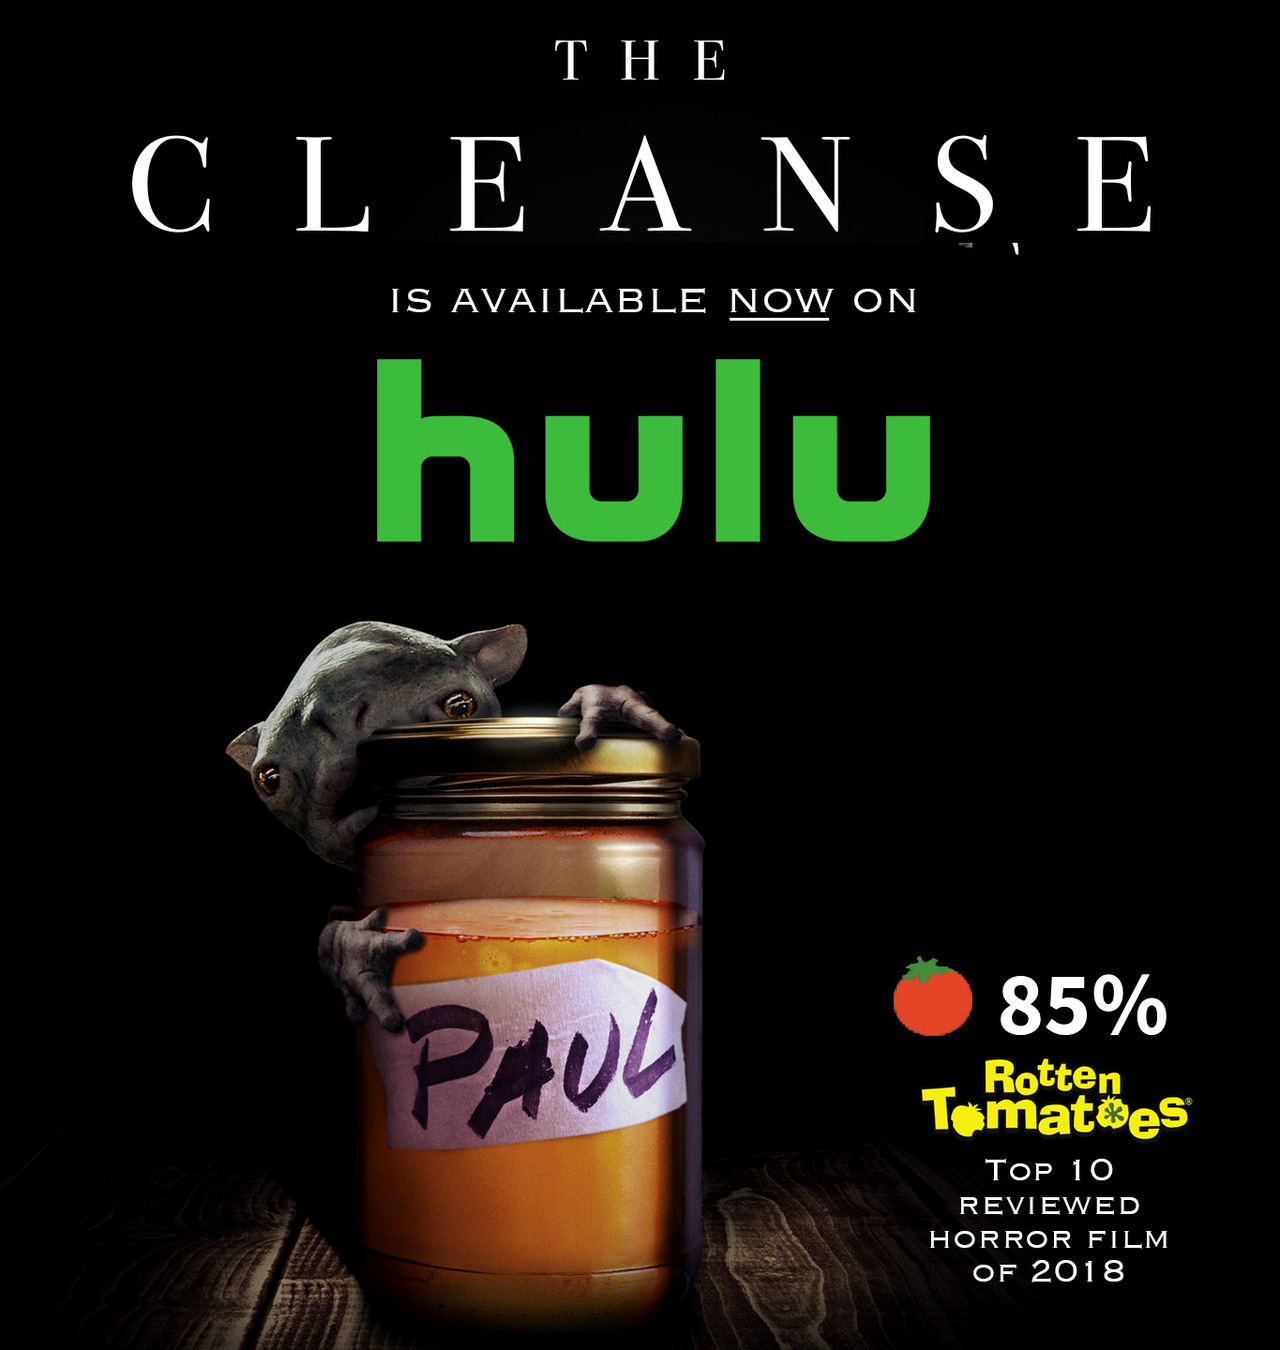 "My creature feature debut from this year: THE CLEANSE is now on Hulu!  It's ""an intriguing mixture of David Cronenberg, Joe Dante and Steven Spielberg.""  And I didn't even make up that quote! It's a real review! Please watch & share:  hulu.com/watch/1326641"